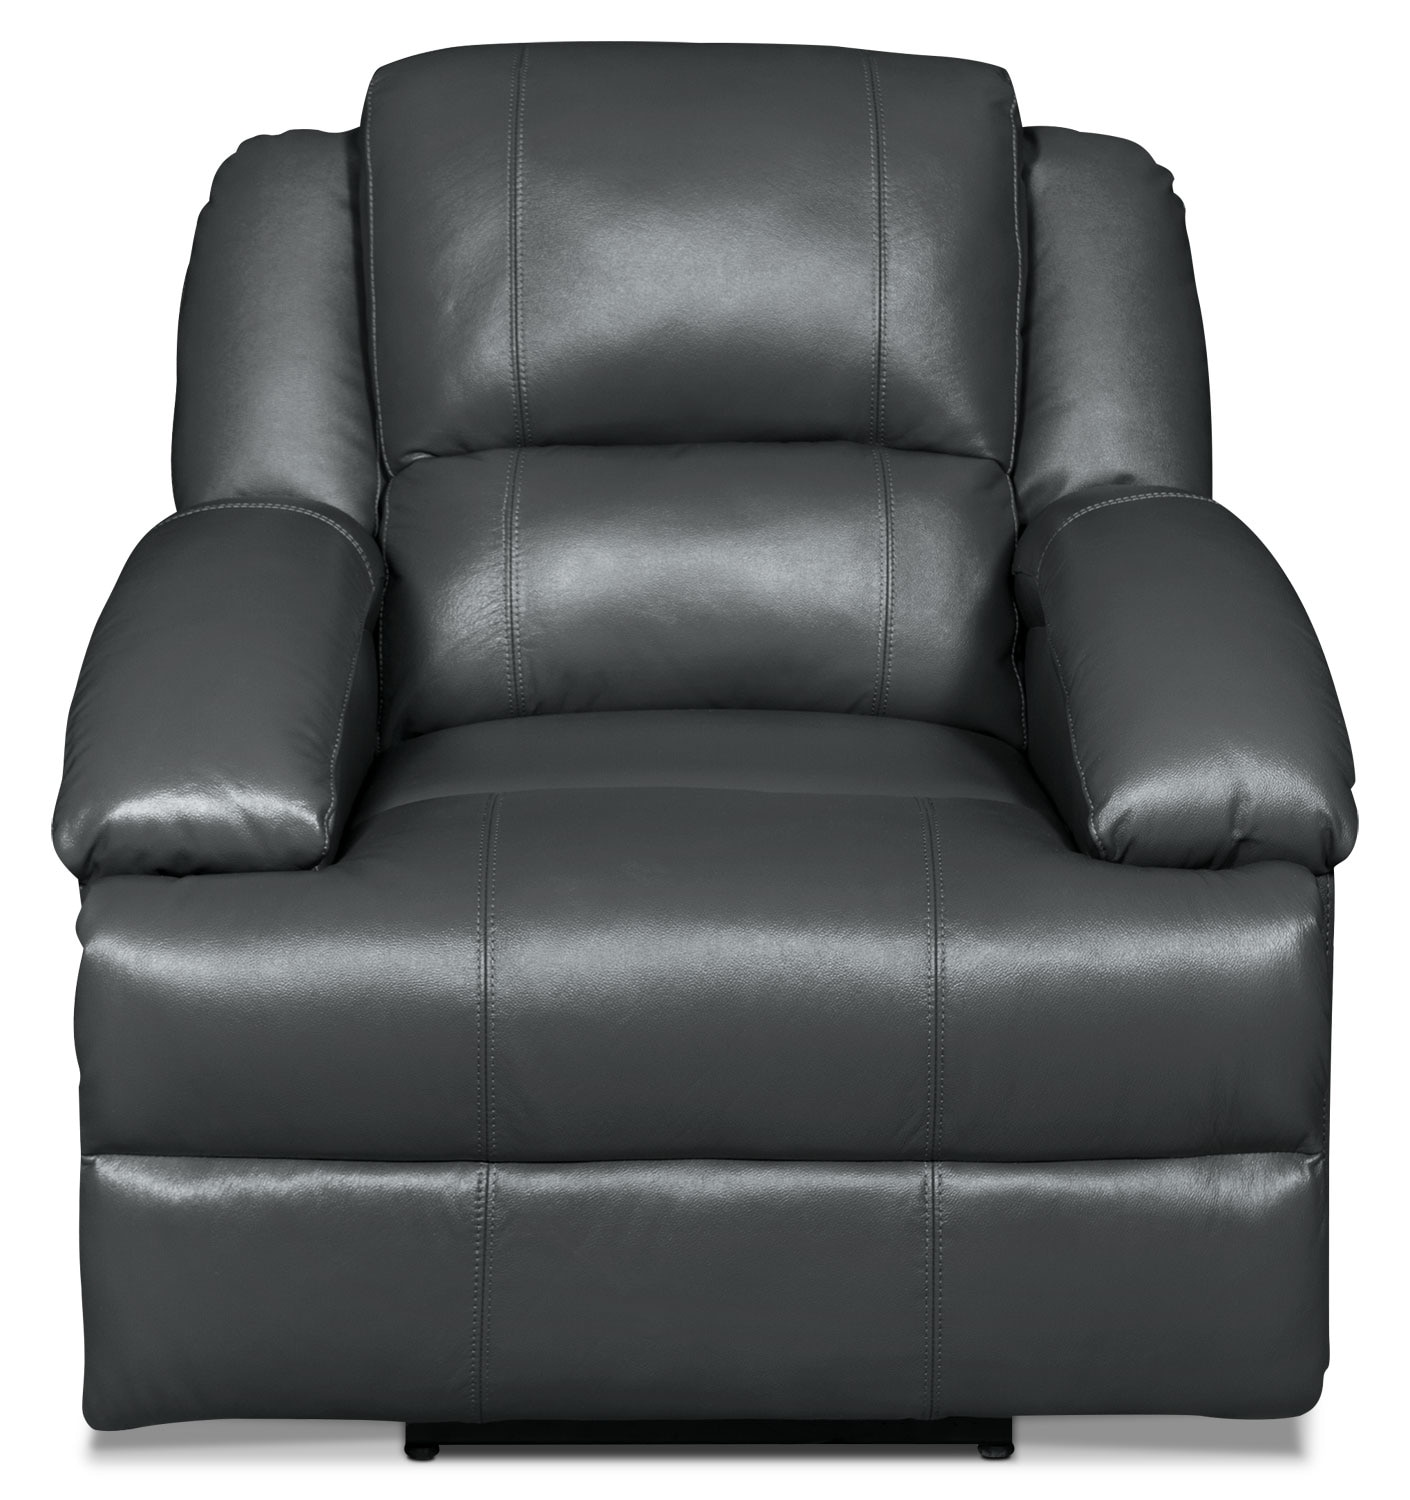 Luka Genuine Leather Reclining Chair - Grey